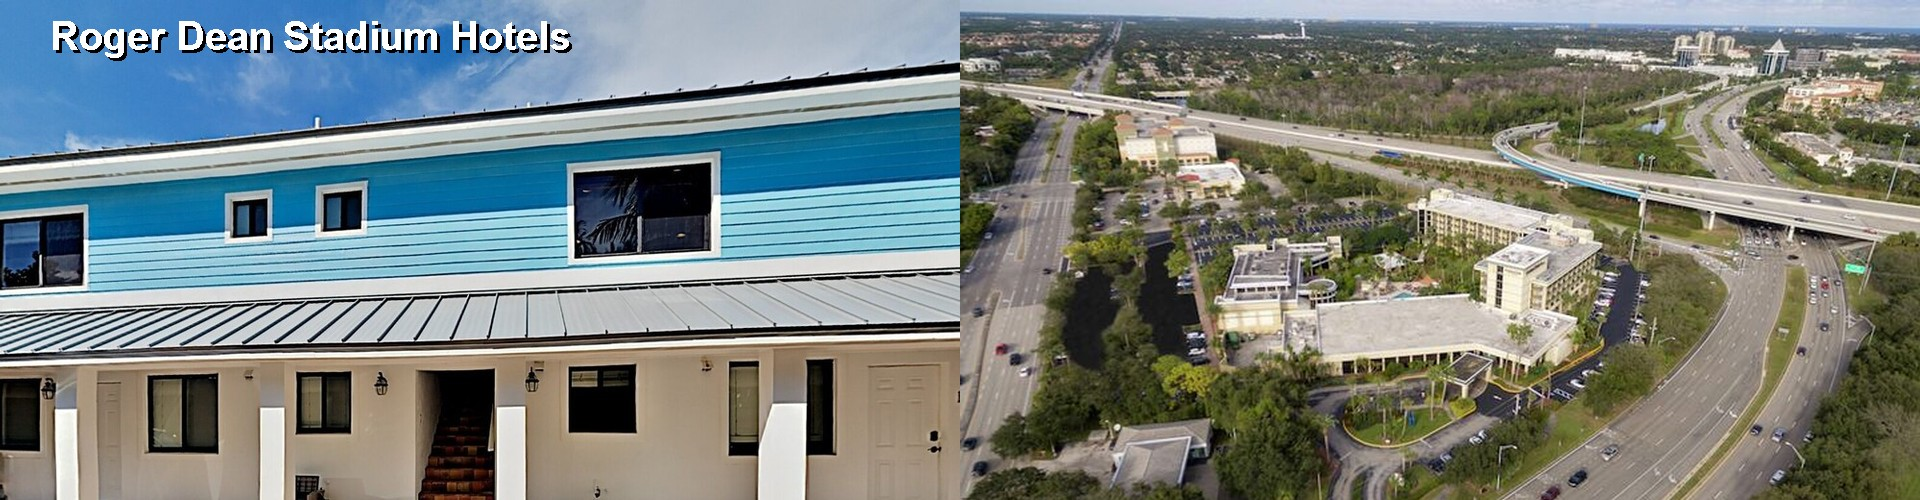 5 Best Hotels near Roger Dean Stadium